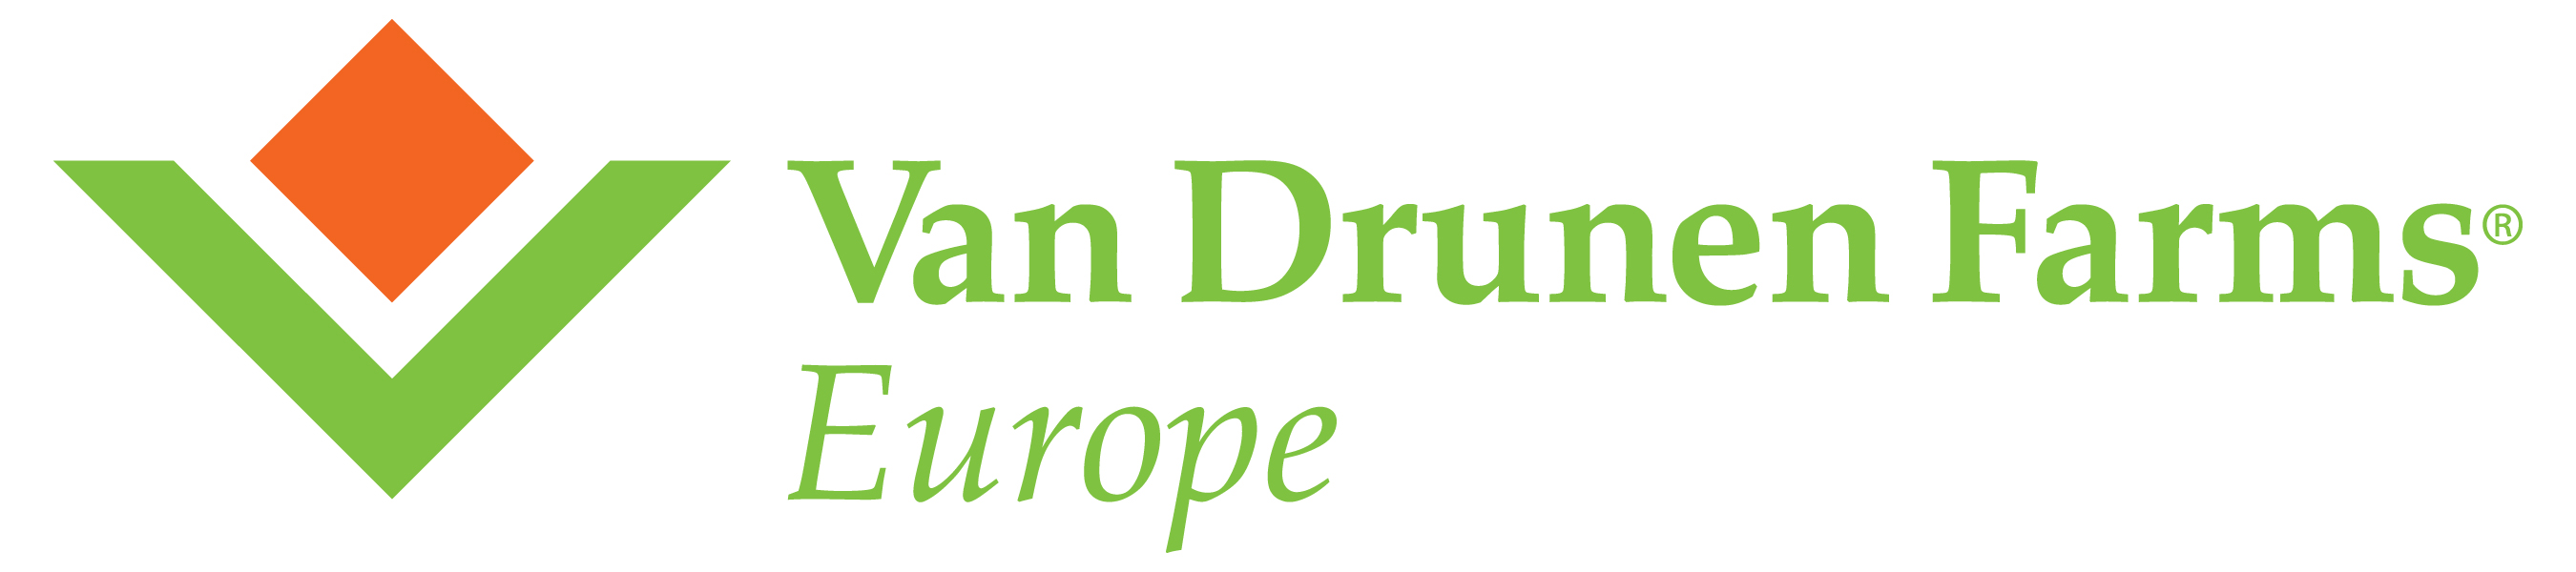 Vandrunen Farms Europe doo